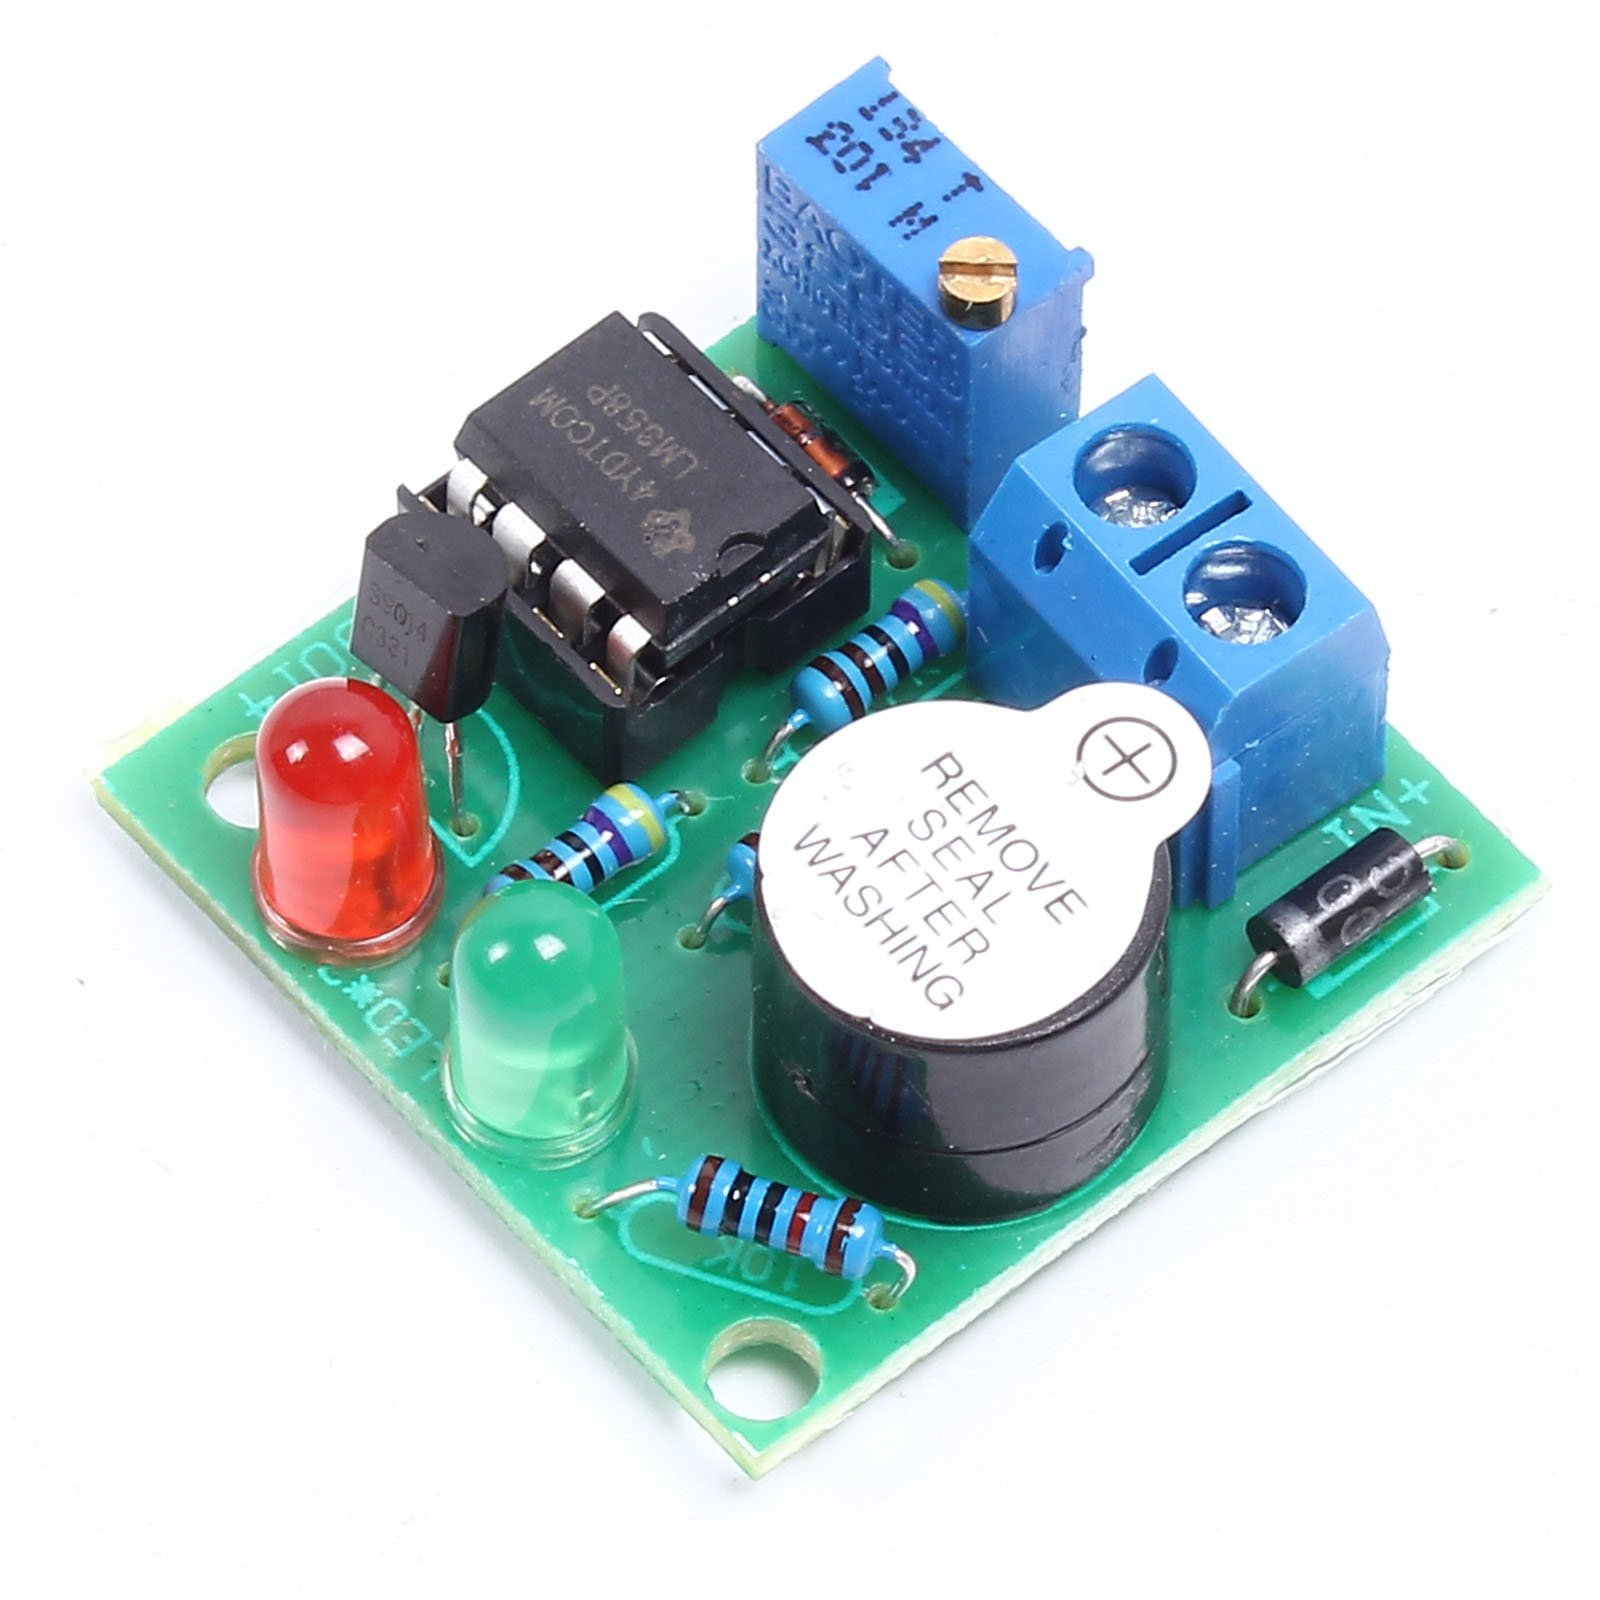 Buy Icstation Lm358 12v Car Lead Acid Battery Low Voltage Protector Alarm Circuit Over Discharge Protection Module With